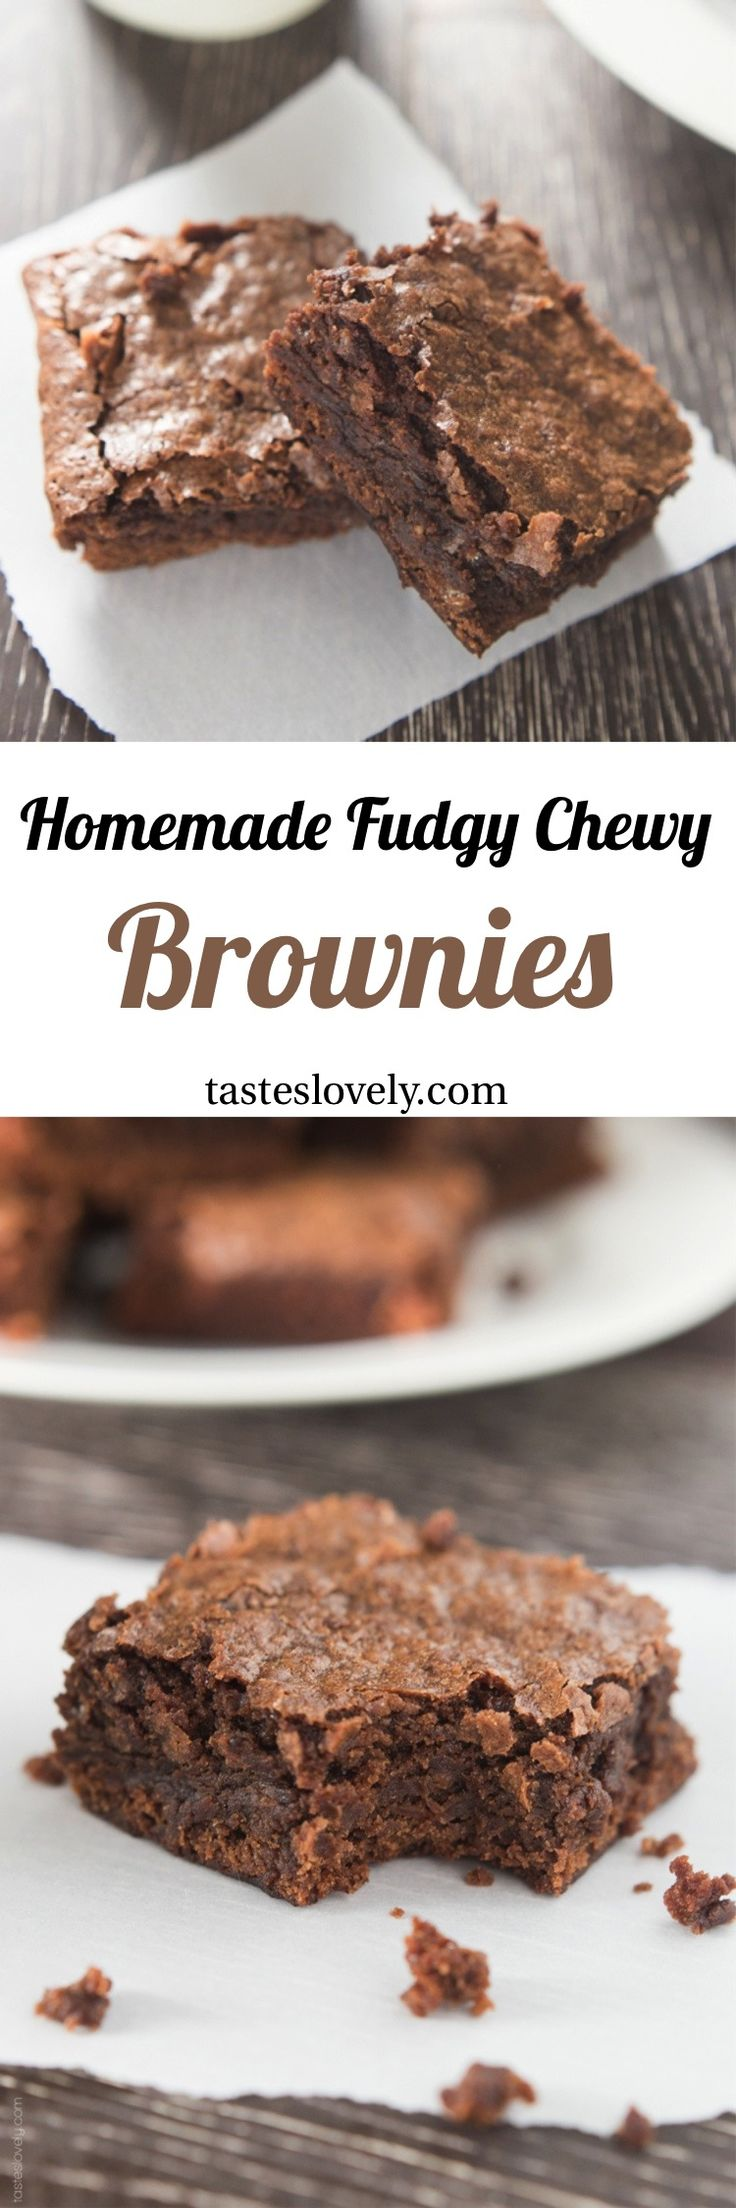 Fudgy chewy brownies taste exactly like a box mix, but better because they're homemade! {Recipe video!}